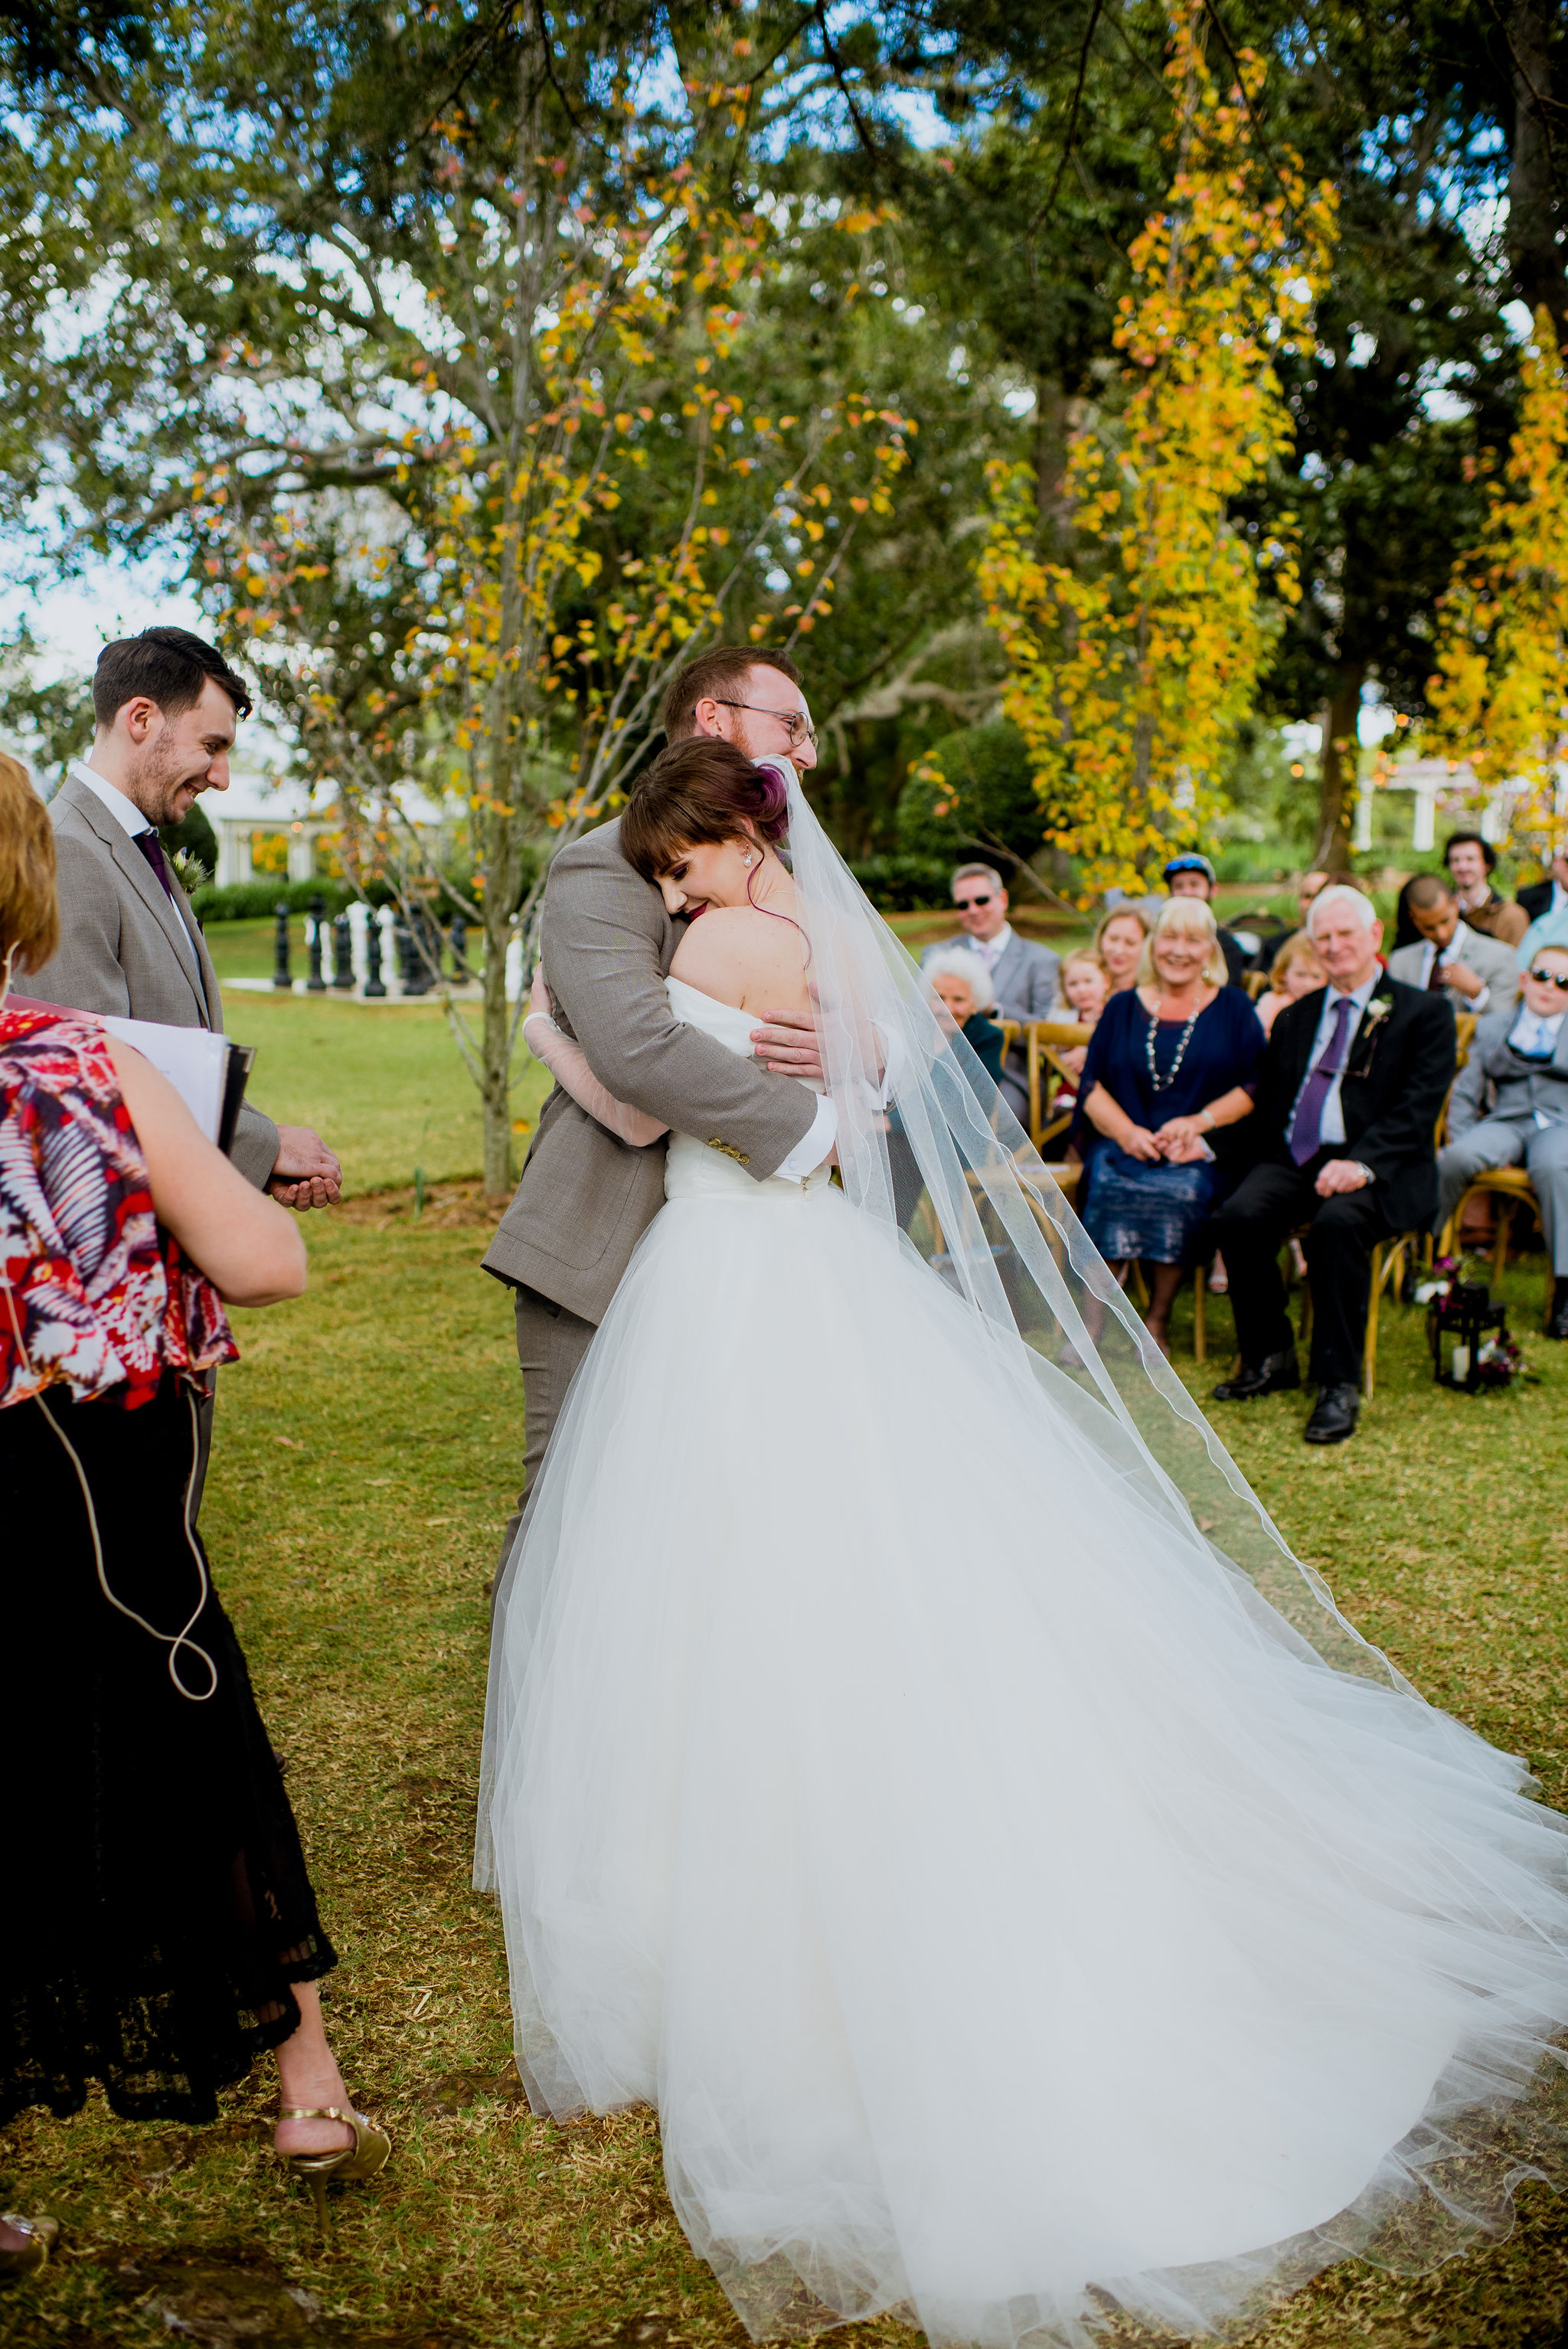 Bride and groom embracing happily at an outdoor garden wedding ceremony